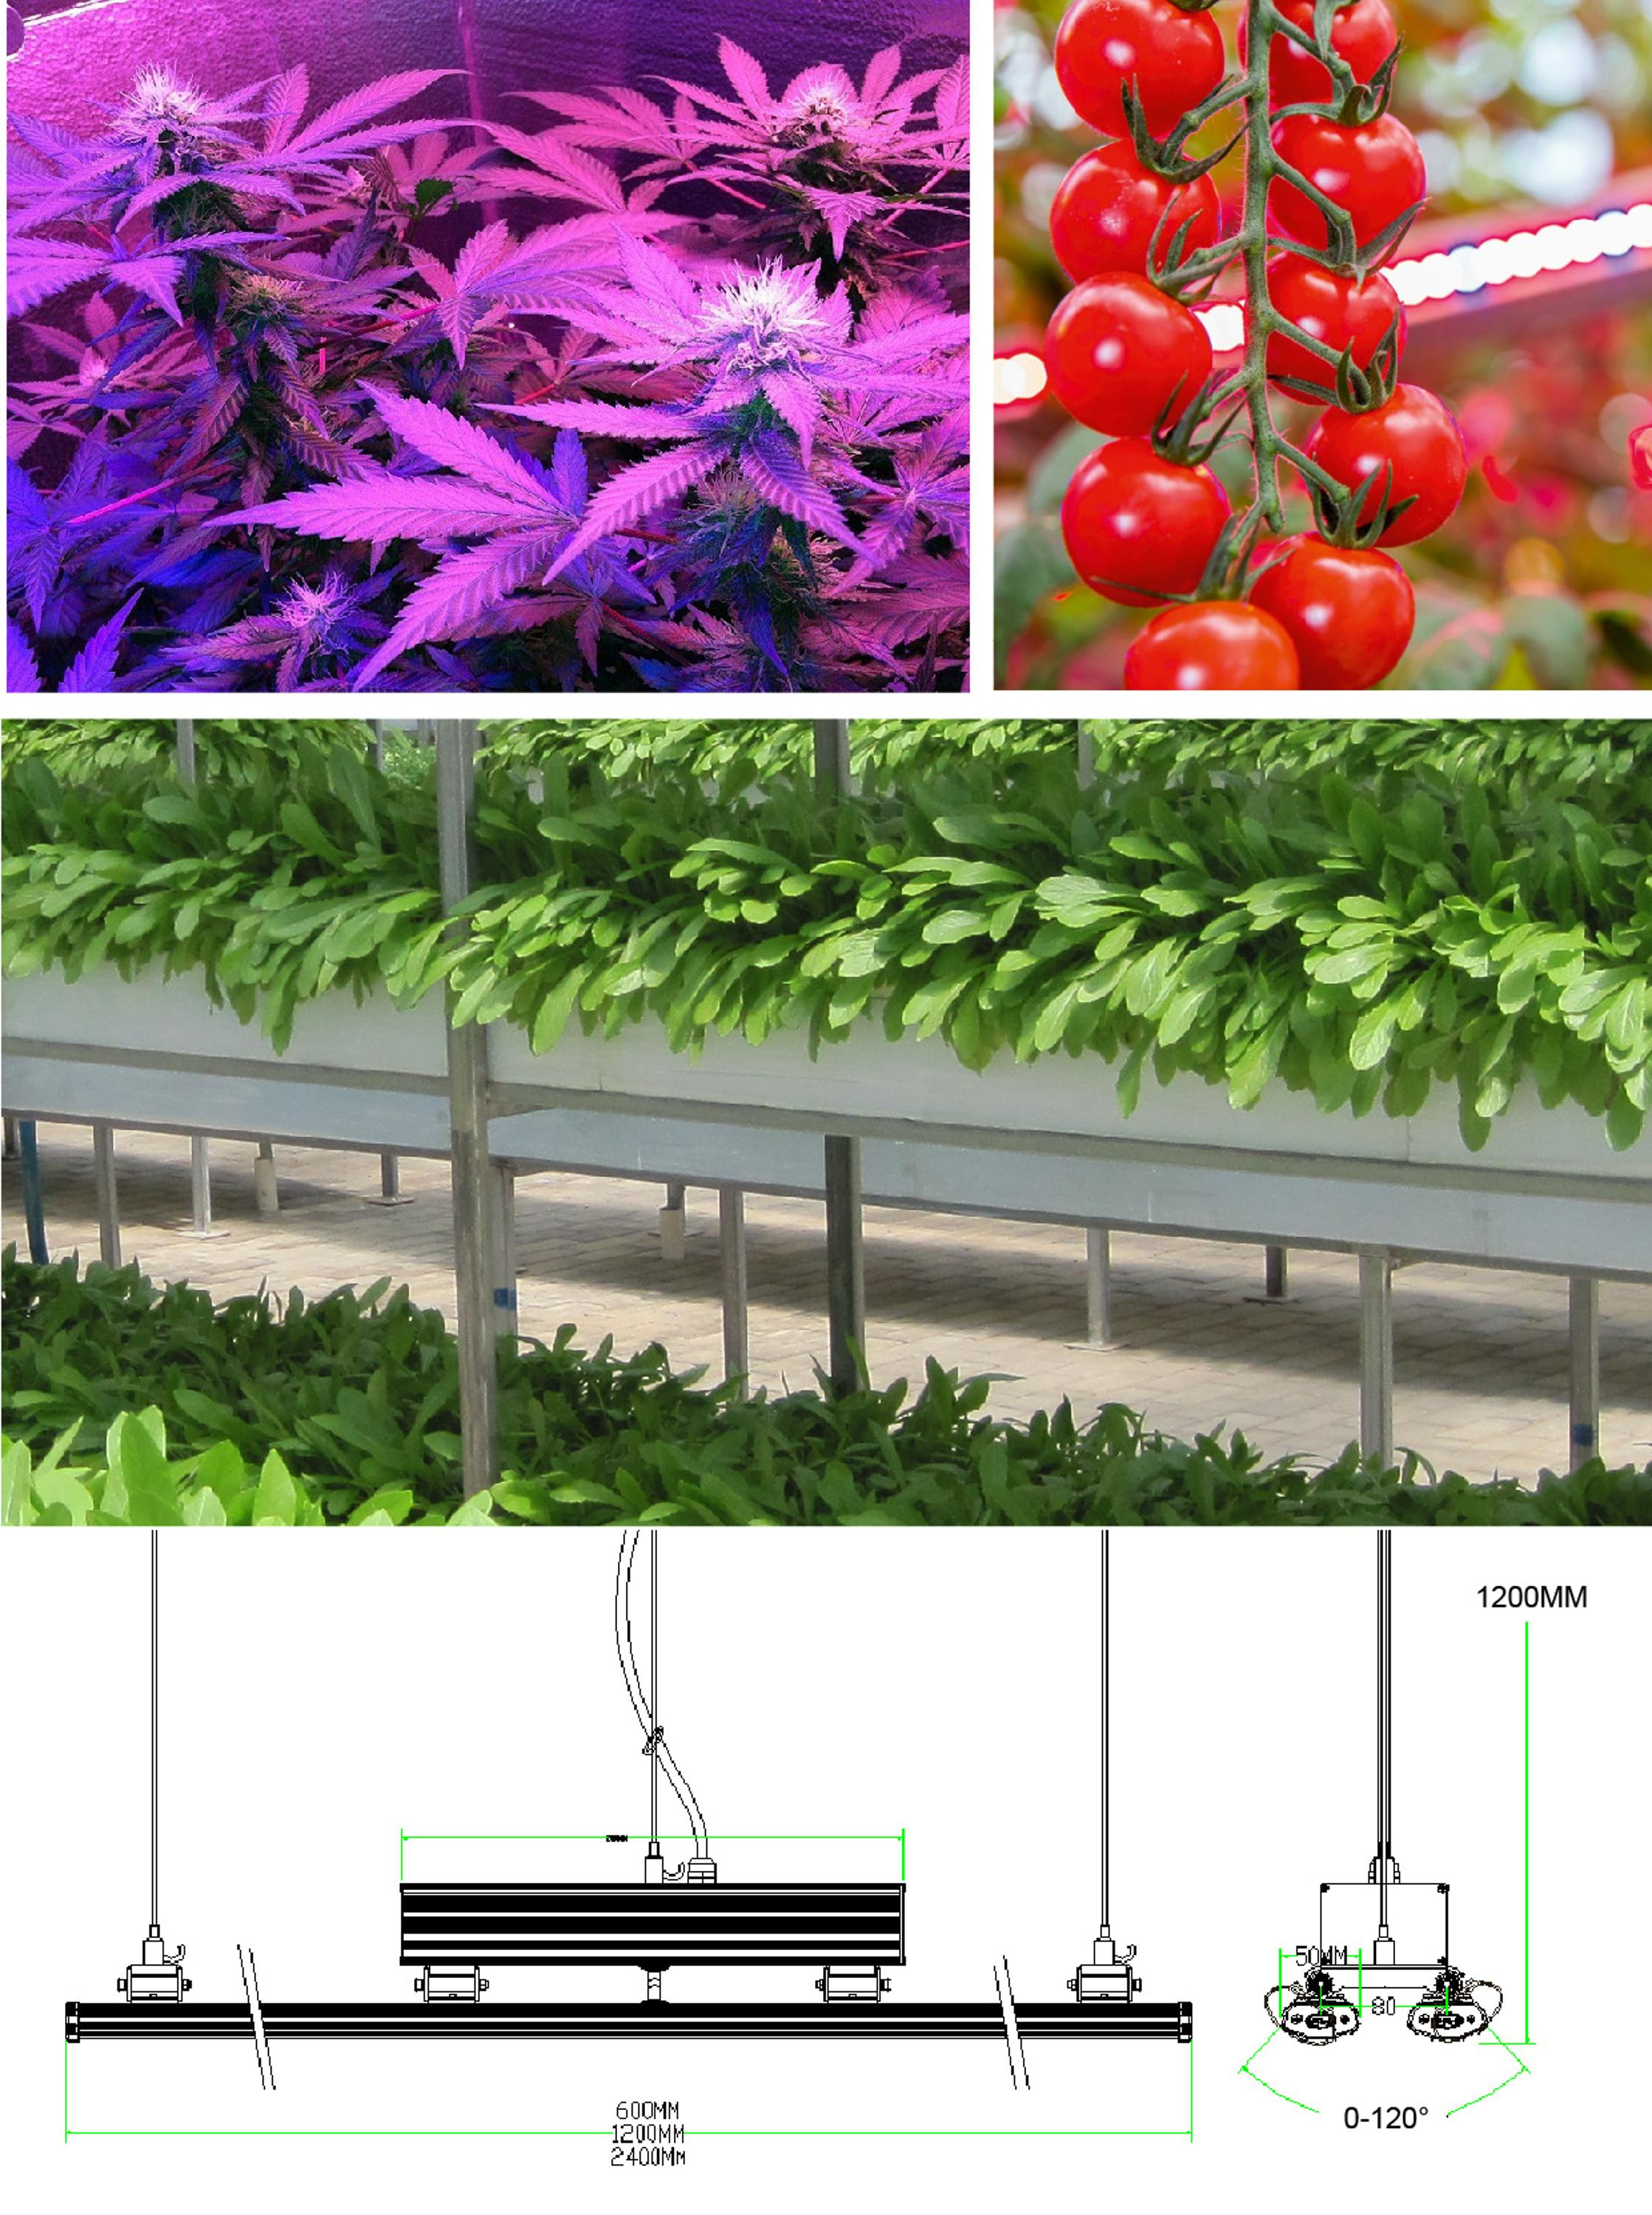 1.2m led grow bar light with lumileds led for hydroponics vertical growing for indoor growing